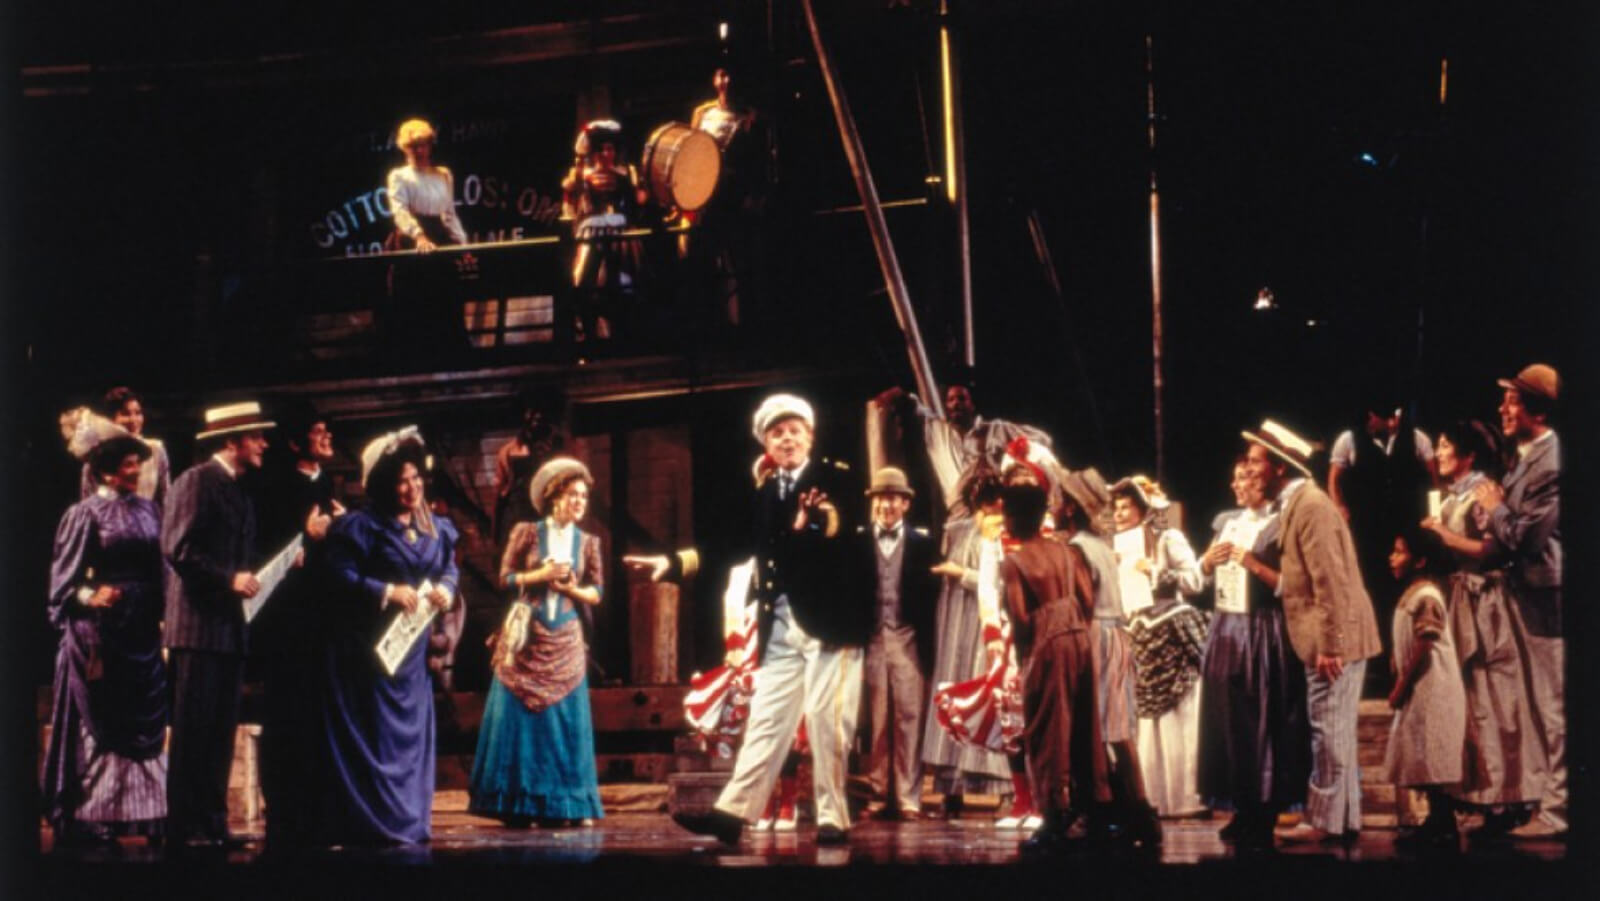 Captain Andy (John McMartin) and the cast, looking happy as he tells the crowd something pleasant and sweet. Everybody seems to be listening to what he's saying.